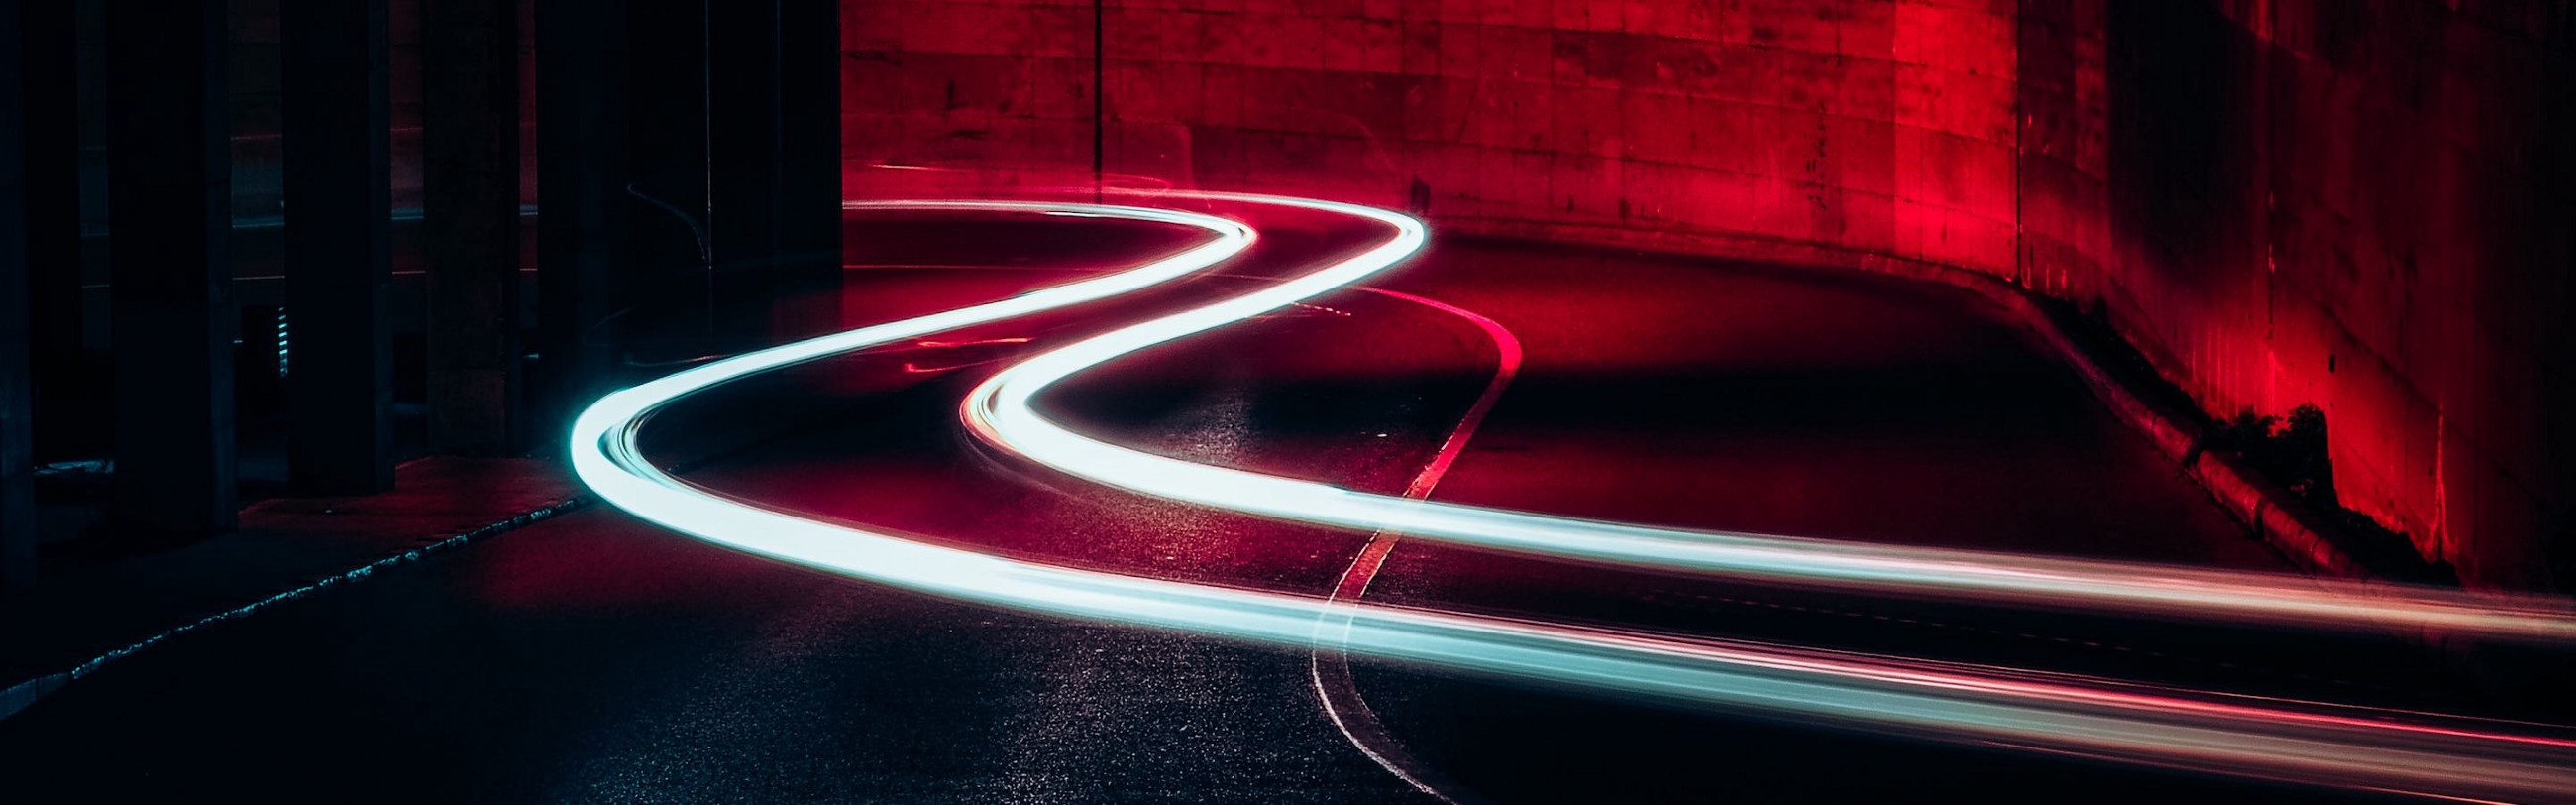 How To Stunnel To Redis On Demand With Stunredis The Data Lab Medium